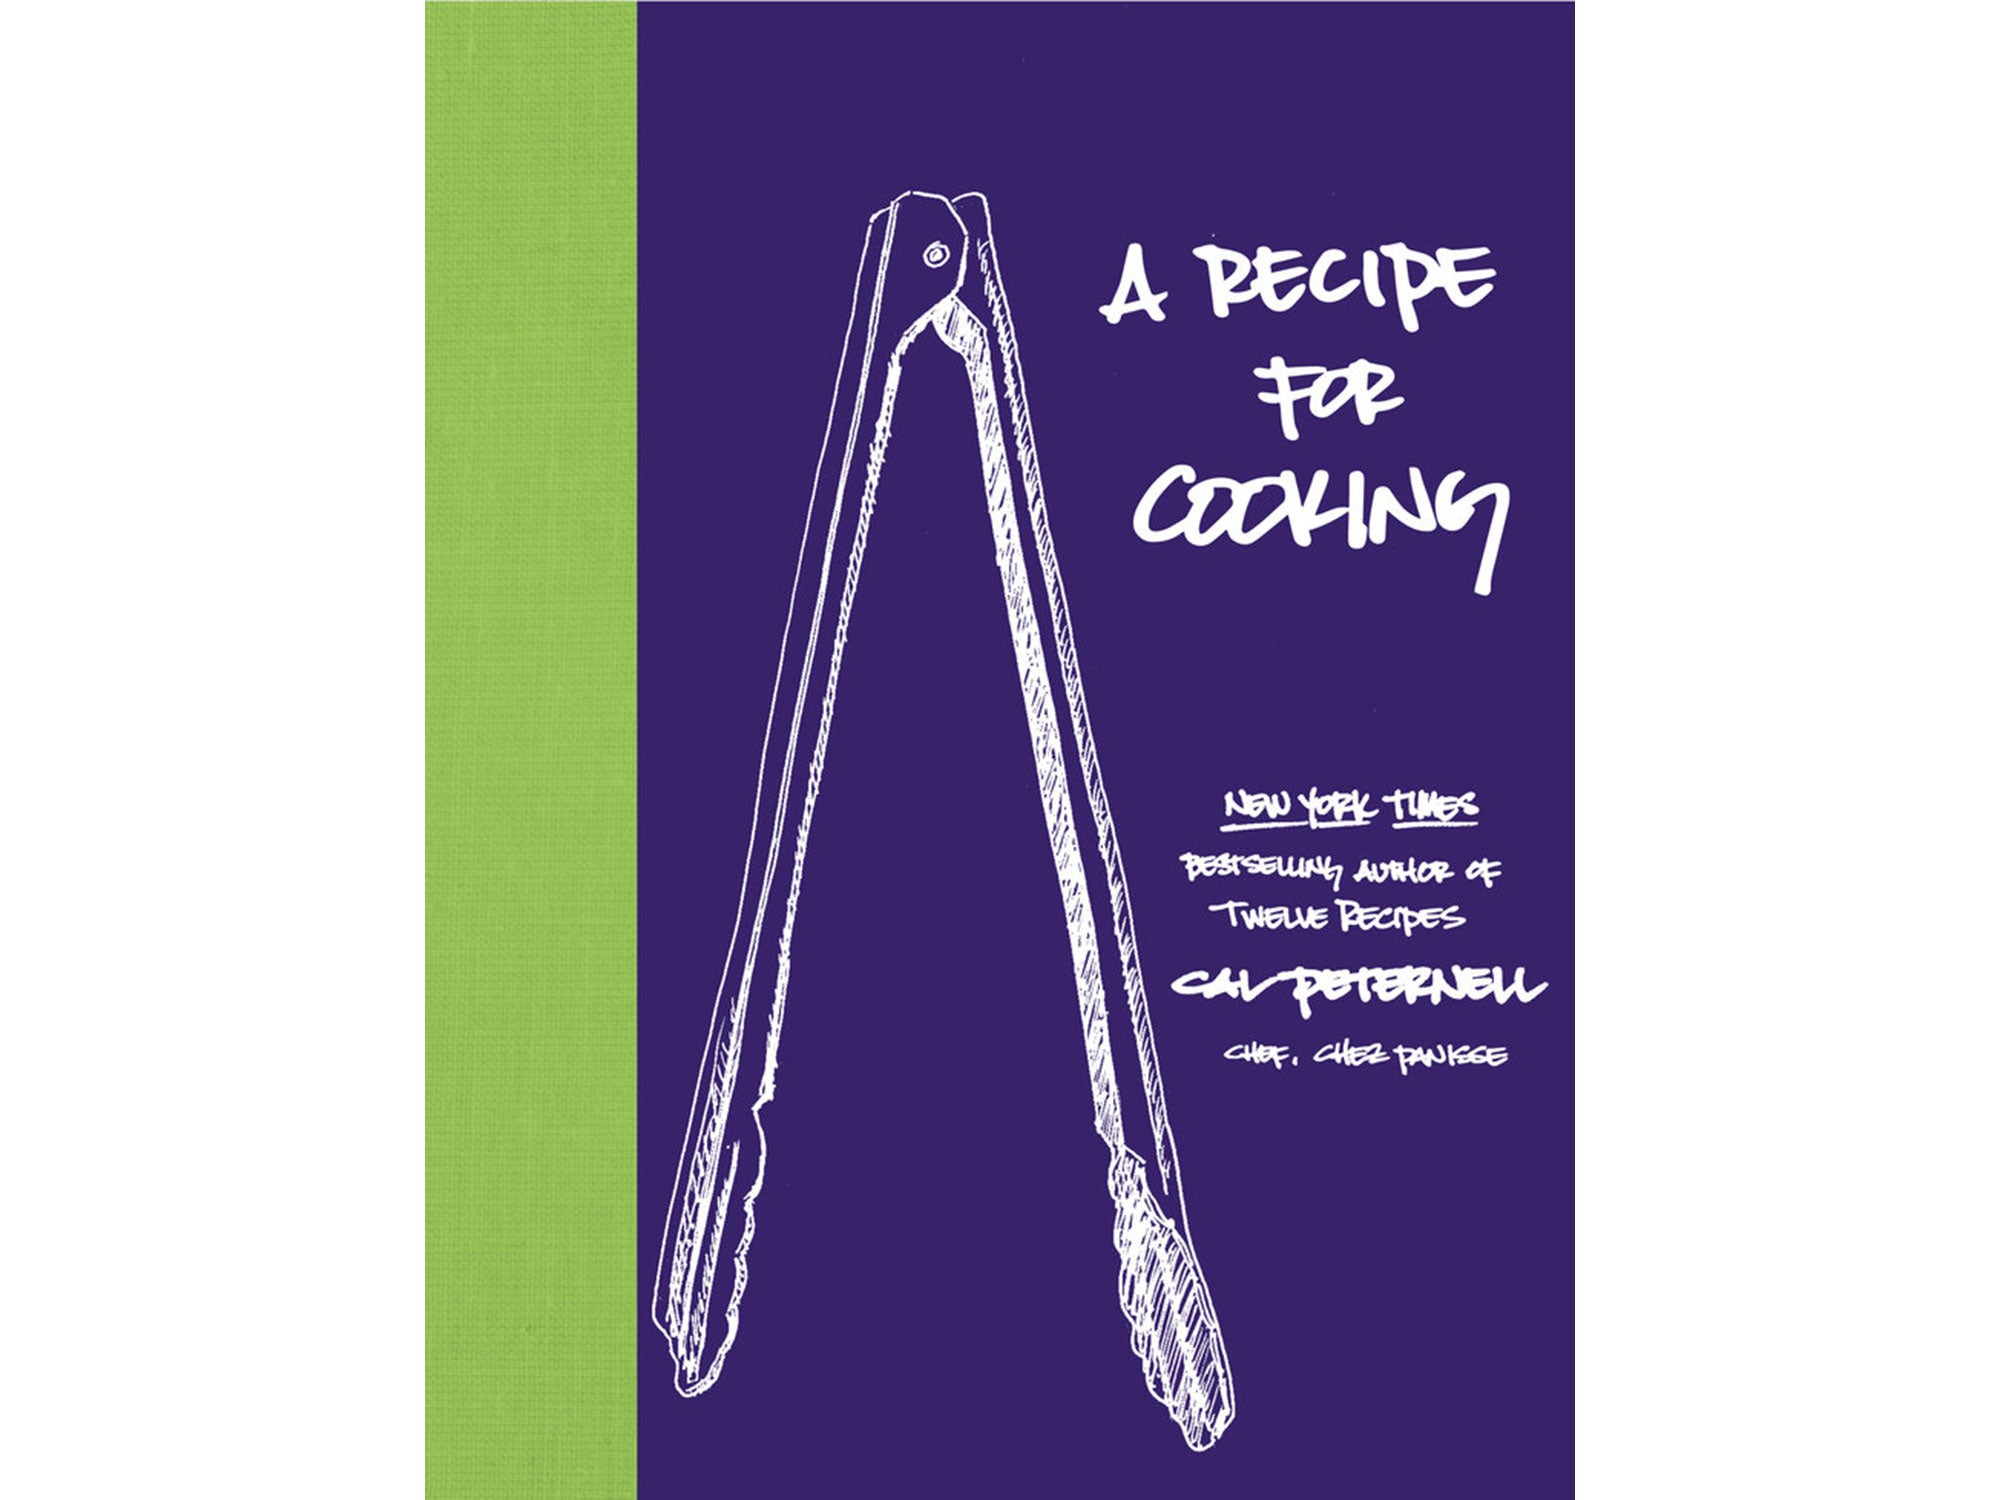 A Recipe for Cooking